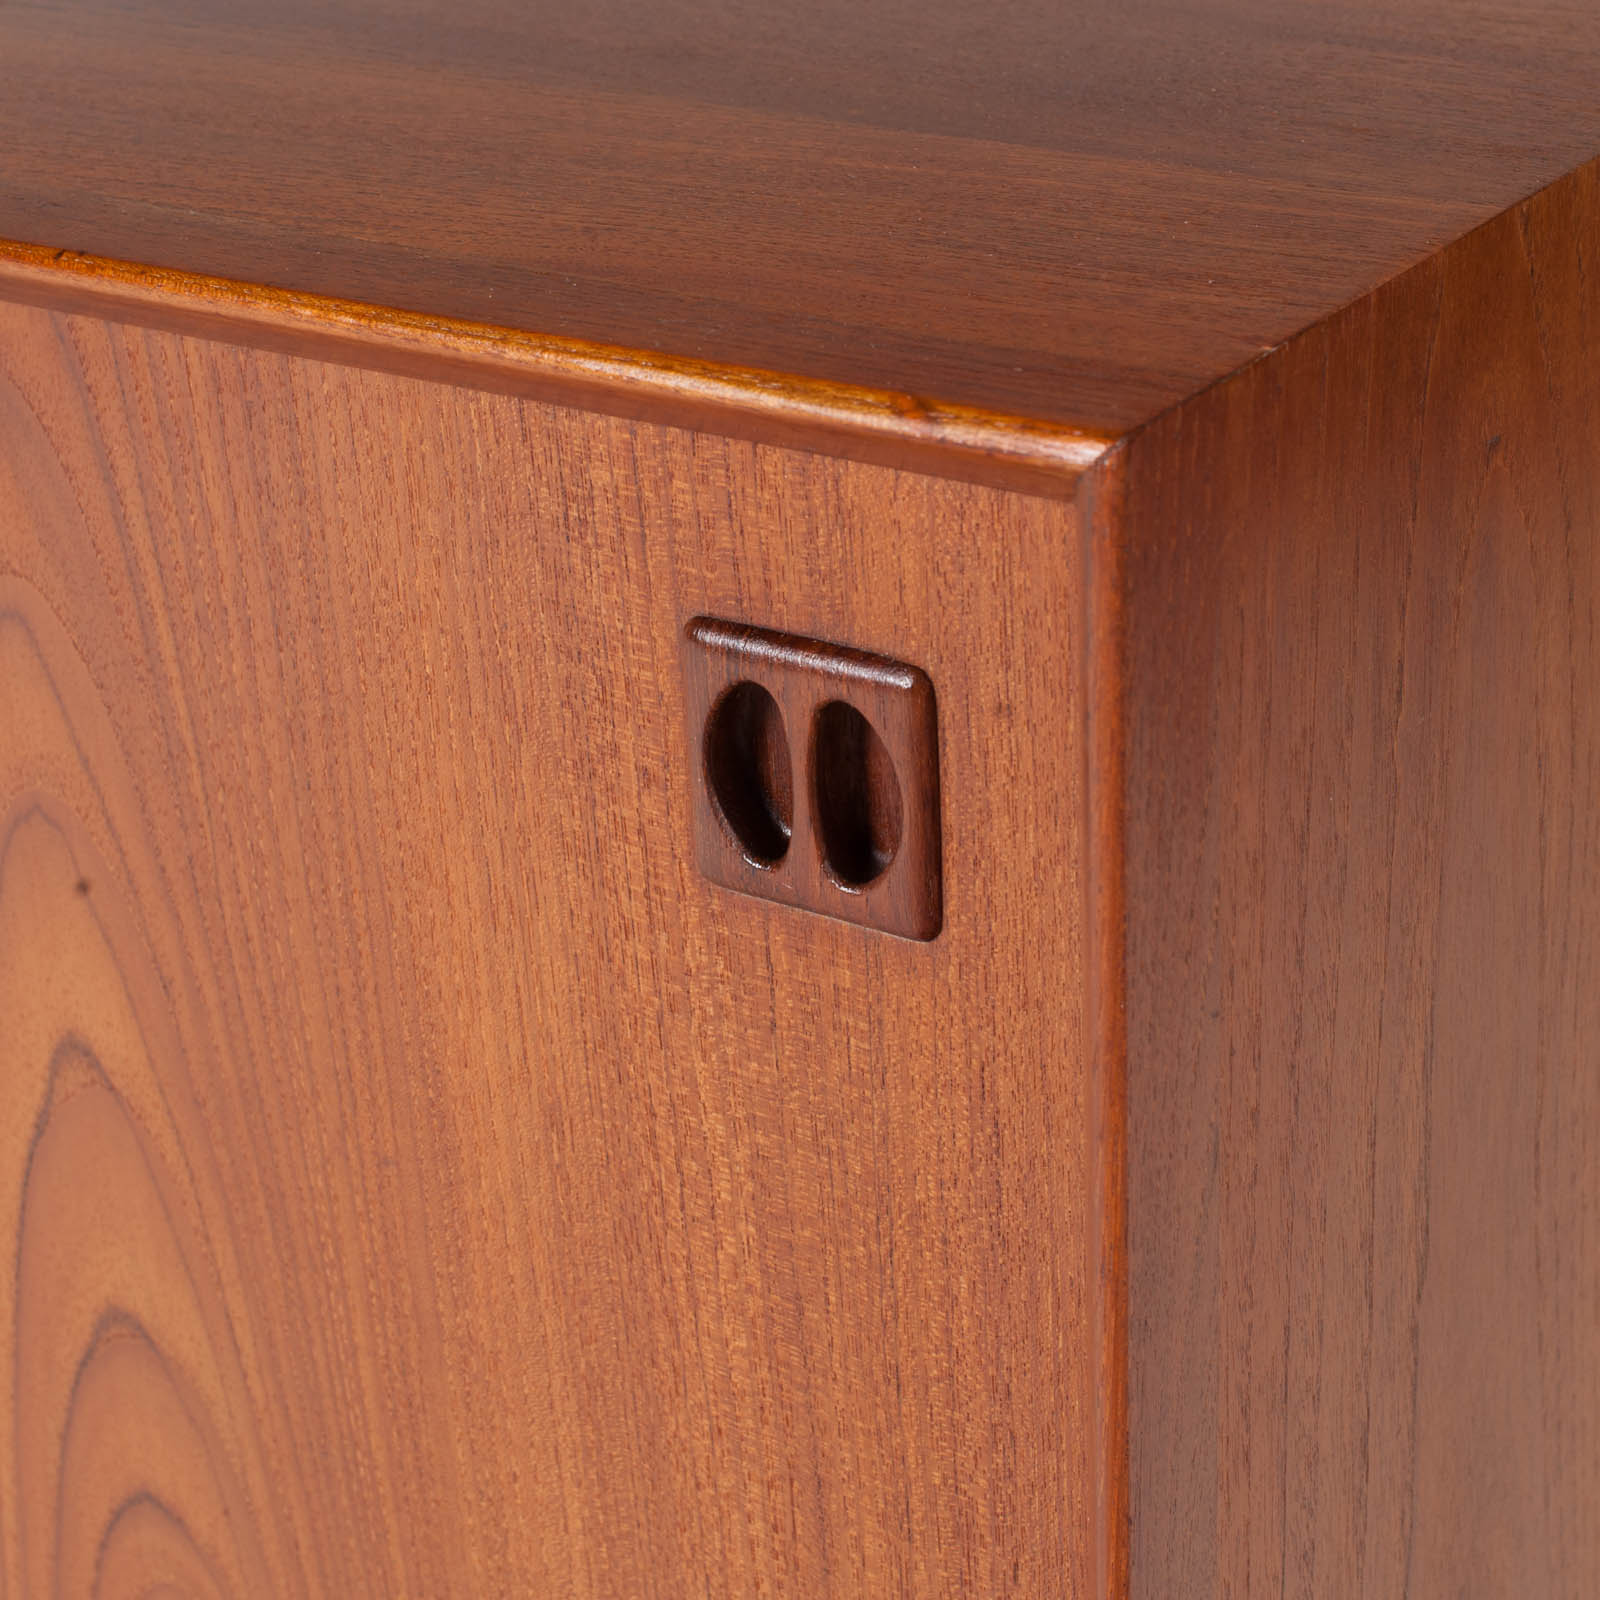 Sideboard By Clause And Son In Teak, 1960s, Denmark9